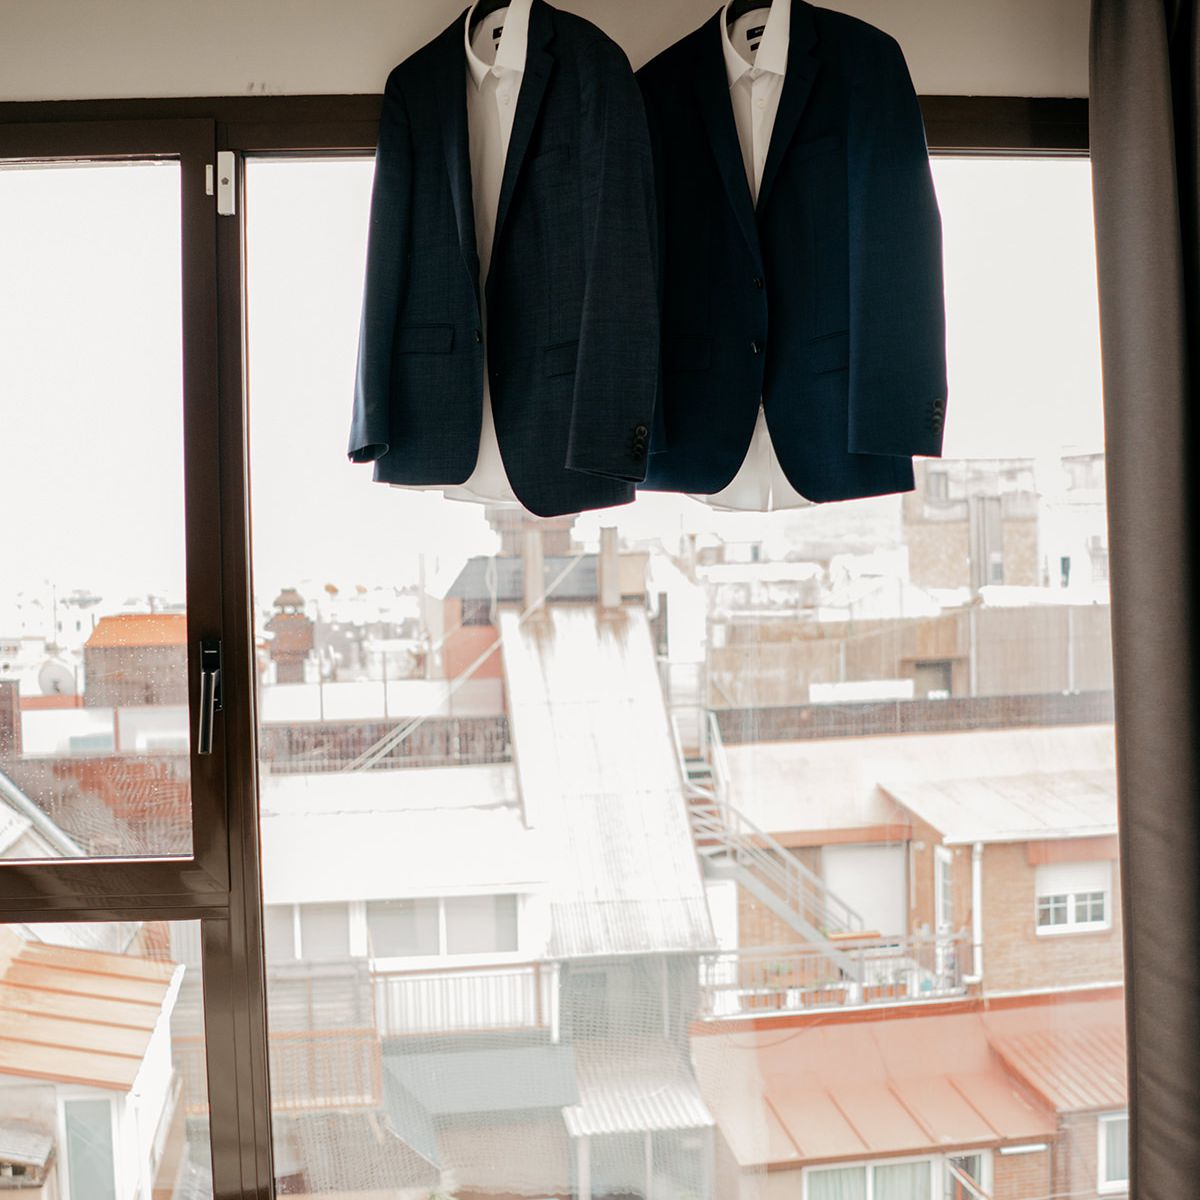 grooms' suits